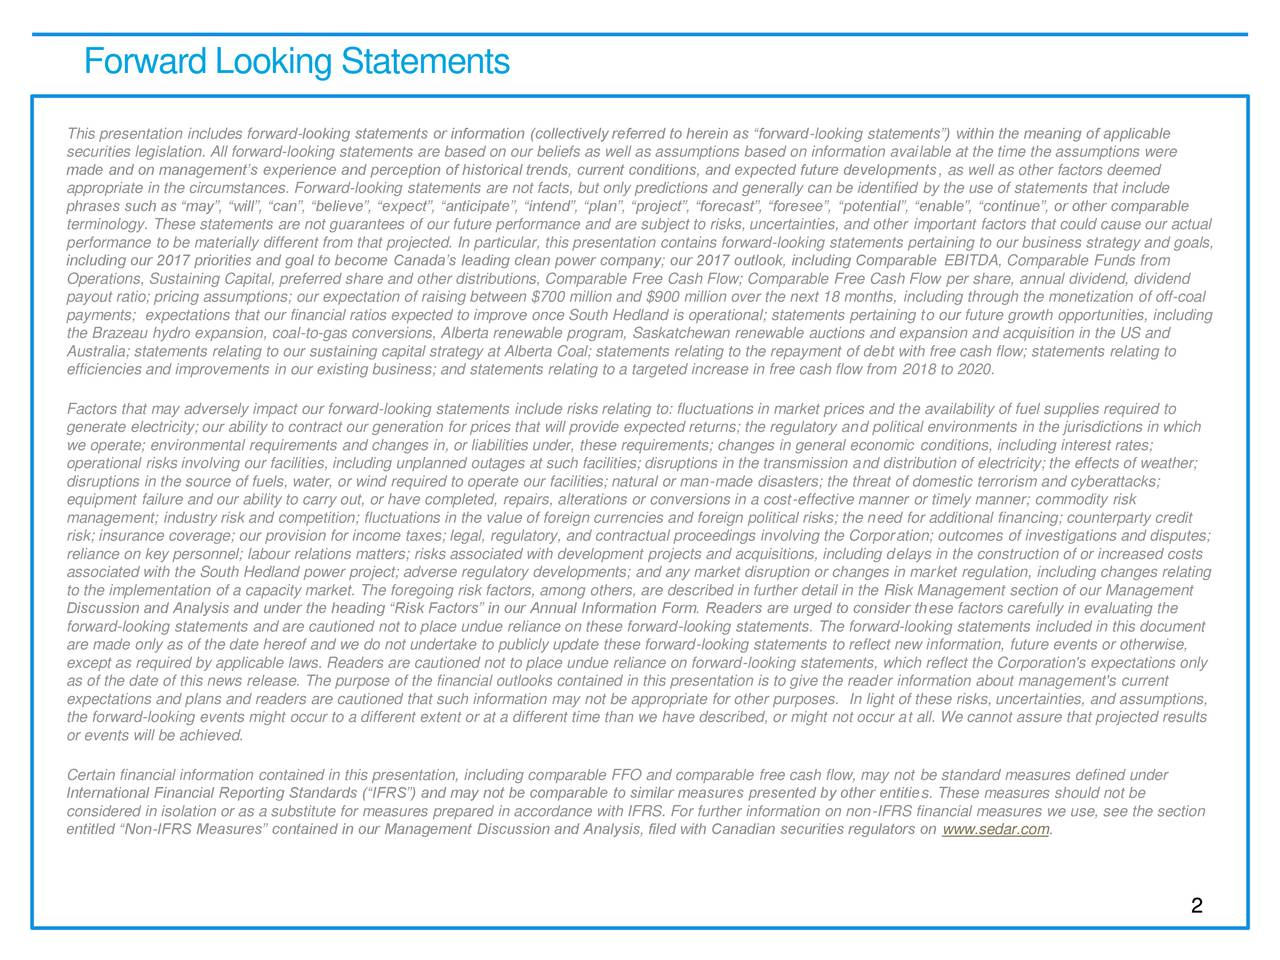 This presentation includes forward-looking statements or information (collectively referred to herein as forward-looking statements) within the meaning of applicable securities legislation. All forward-looking statements are based on our beliefs as well as assumptions based on information available at the time the assumptions were made and on managements experience and perception of historical trends, current conditions, and expected future developments, as well as other factors deemed appropriate in the circumstances. Forward-looking statements are not facts, but only predictions and generally can be identified by the use of statements that include phrases such as may, will, can, believe, expect, anticipate, intend, plan, project, forecast, foresee, potential, enable, continue, or other comparable terminology. These statements are not guarantees of our future performance and are subject to risks, uncertainties, and other important factors that could cause our actual performance to be materially different from that projected. In particular, this presentation contains forward-looking statements pertaining to our business strategy and goals, including our 2017 priorities and goal to become Canadas leading clean power company; our 2017 outlook, including Comparable EBITDA, Comparable Funds from Operations, Sustaining Capital, preferred share and other distributions, Comparable Free Cash Flow; Comparable Free Cash Flow per share, annual dividend, dividend payout ratio; pricing assumptions; our expectation of raising between $700 million and $900 million over the next 18 months, including through the monetization of off-coal payments; expectations that our financial ratios expected to improve once South Hedland is operational; statements pertaining to our future growth opportunities, including the Brazeau hydro expansion, coal-to-gas conversions, Alberta renewable program, Saskatchewan renewable auctions and expansion and acquisition in the US and Australia; statements r